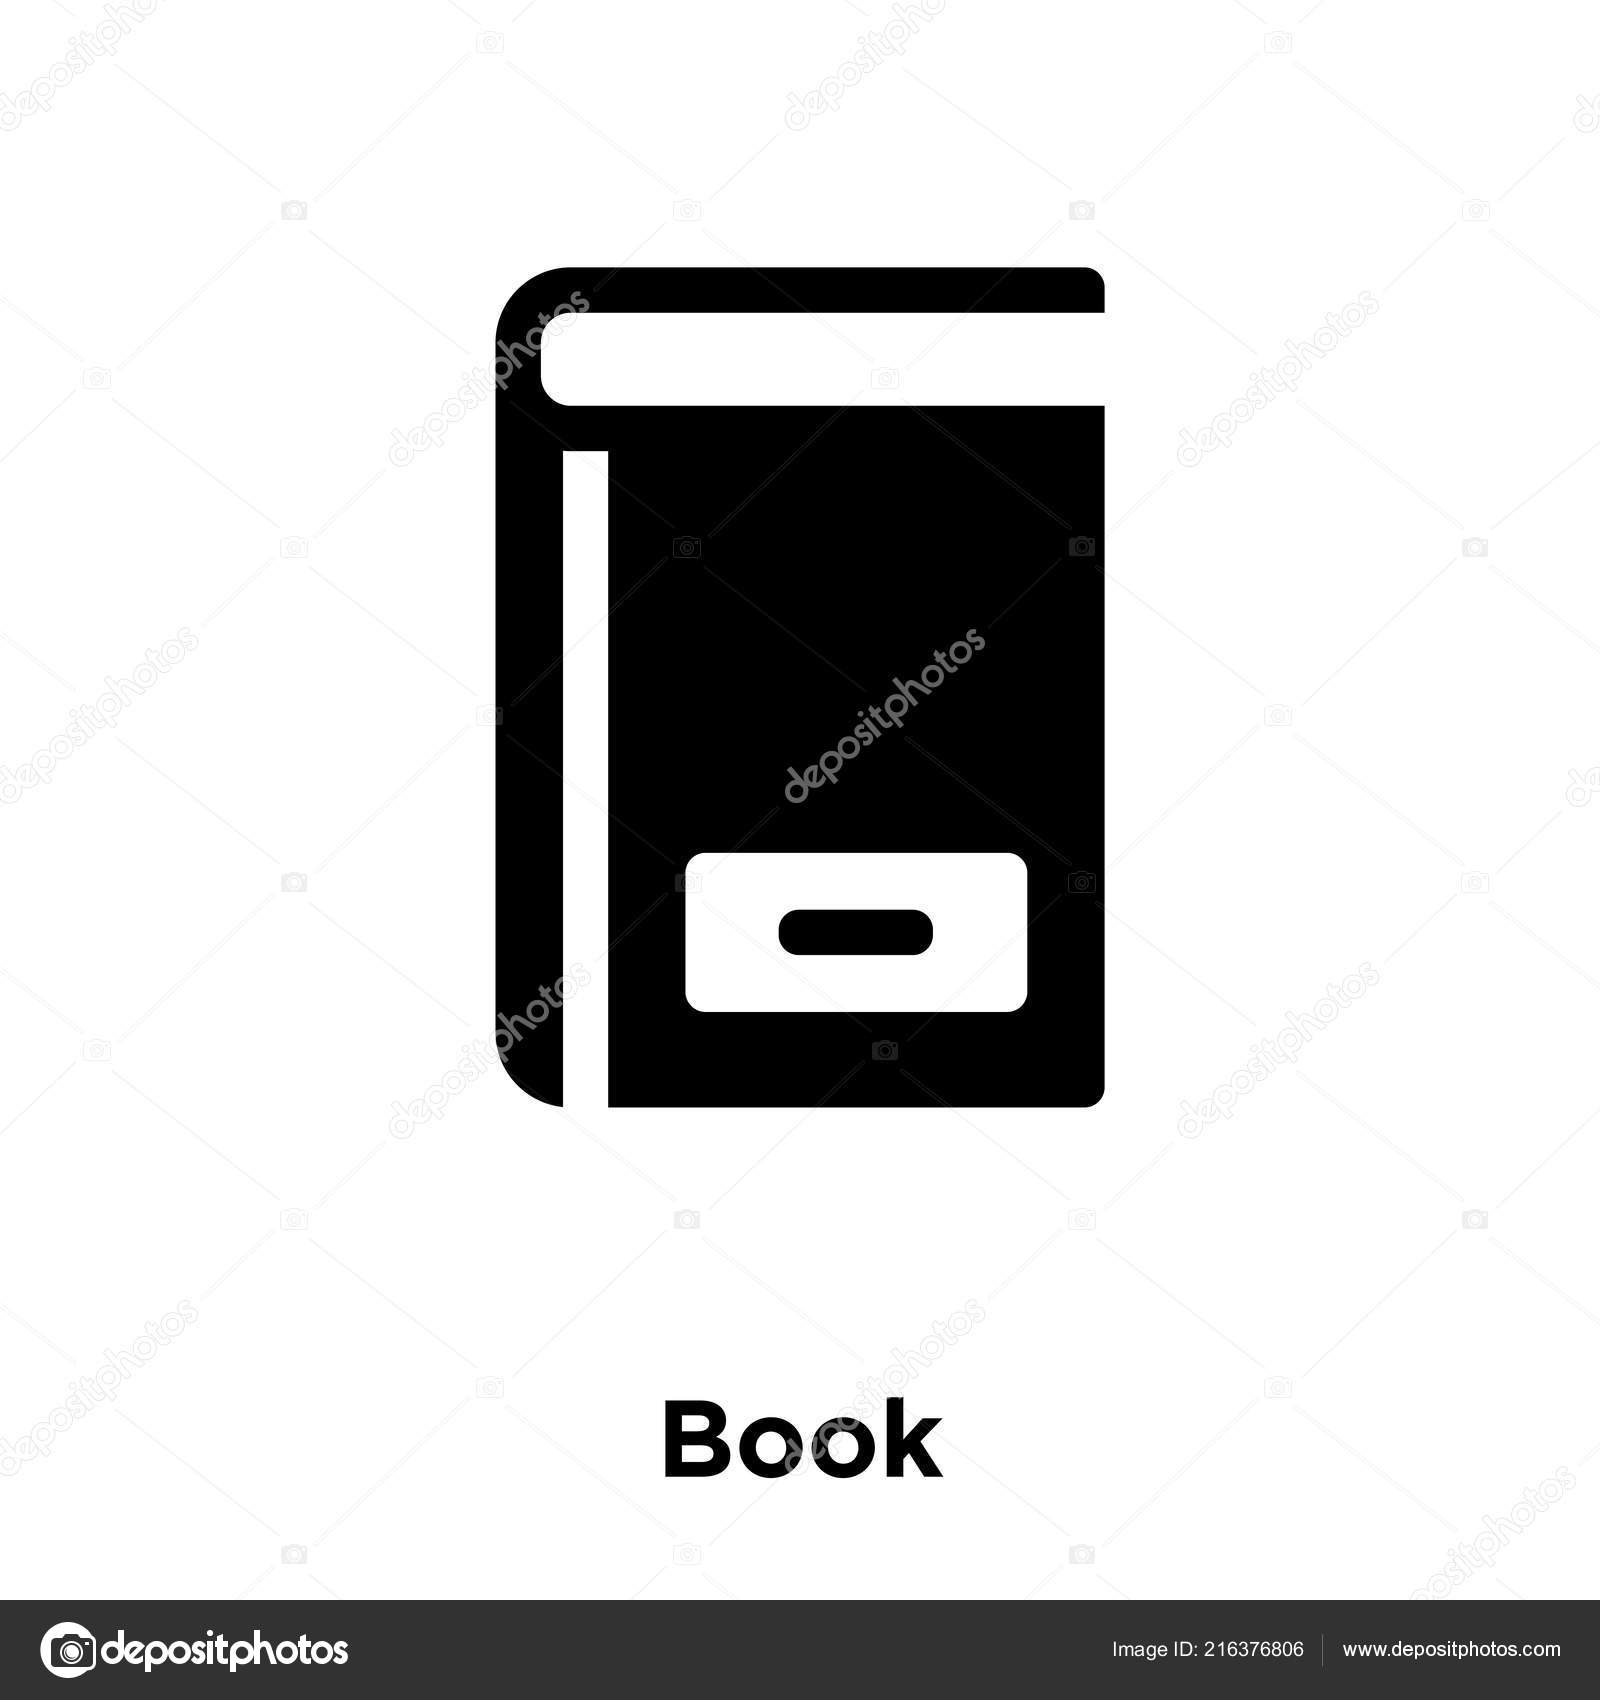 Book Icon Vector Isolated On White Background Logo Concept Of Sign Transparent Filled Black Symbol By Muslumstock